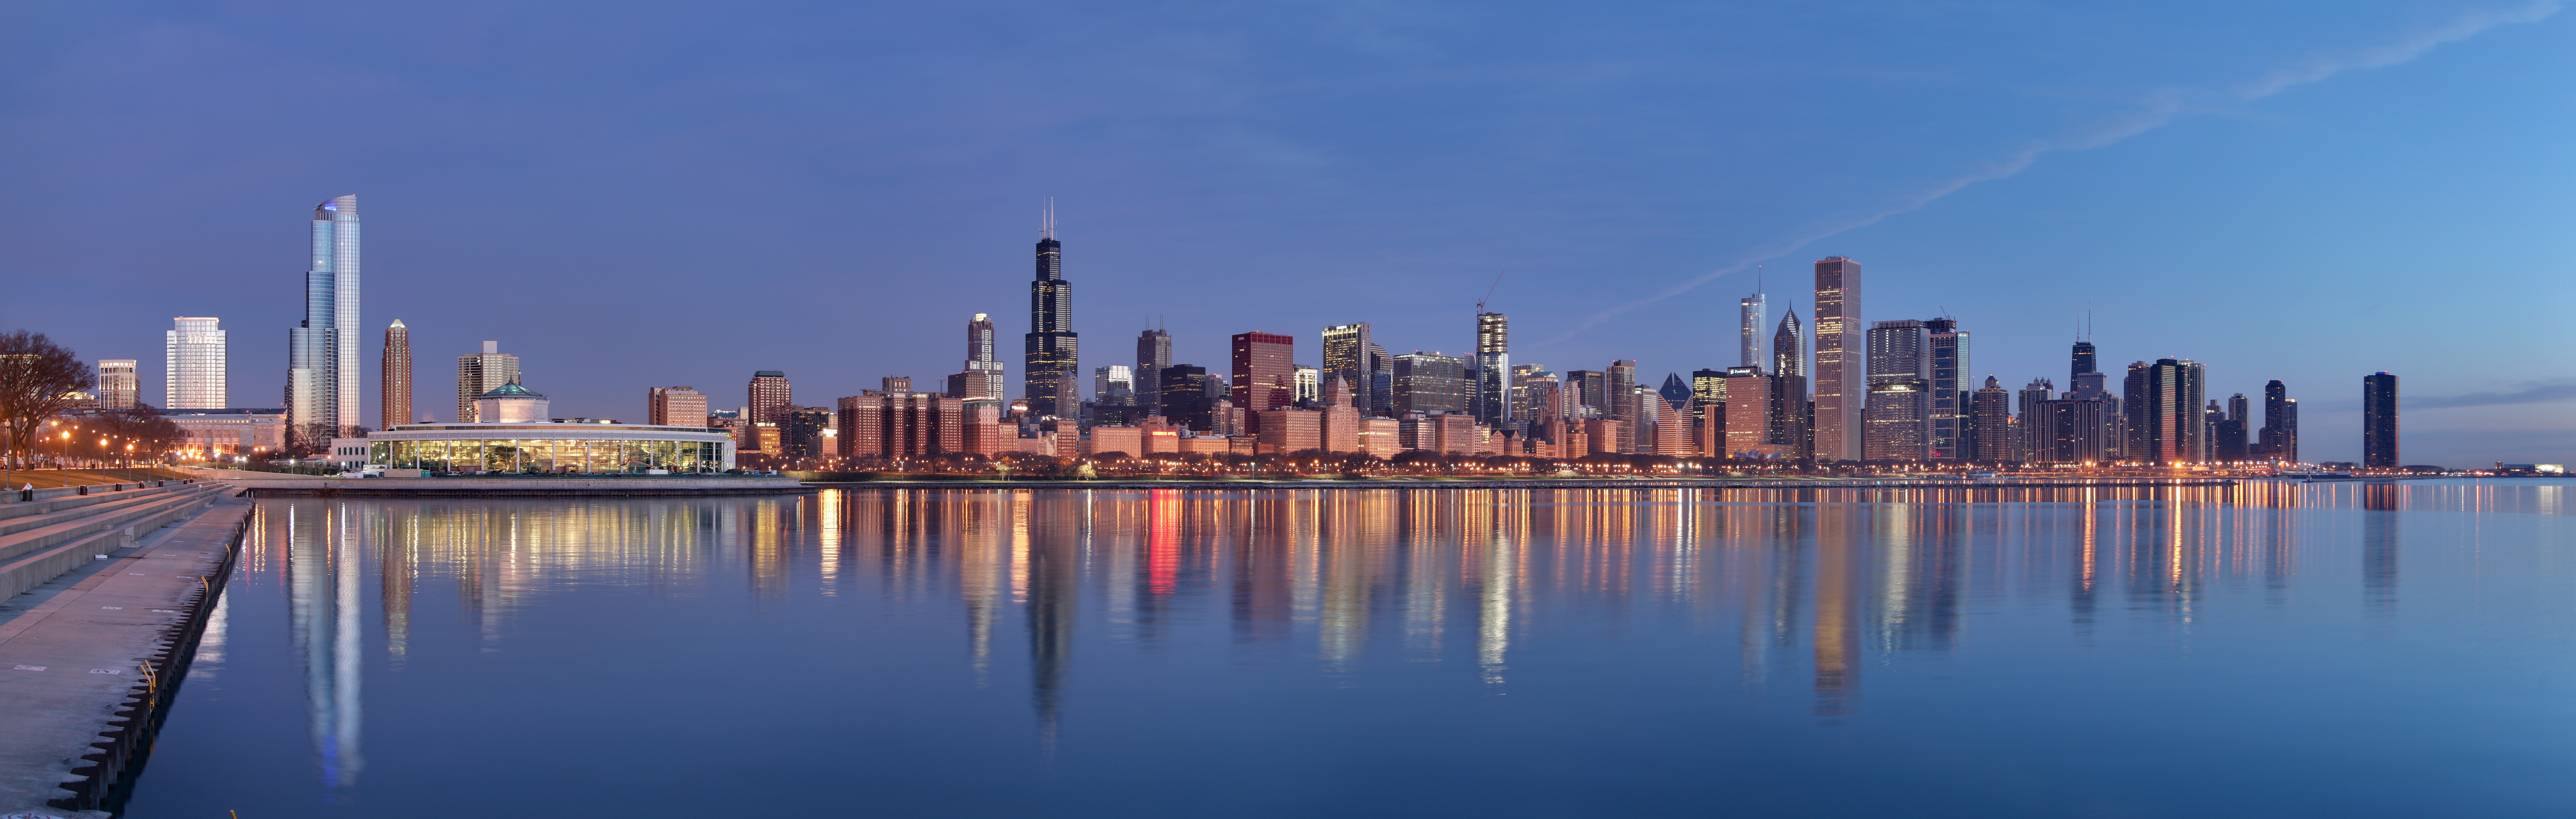 chicago-free-background-images